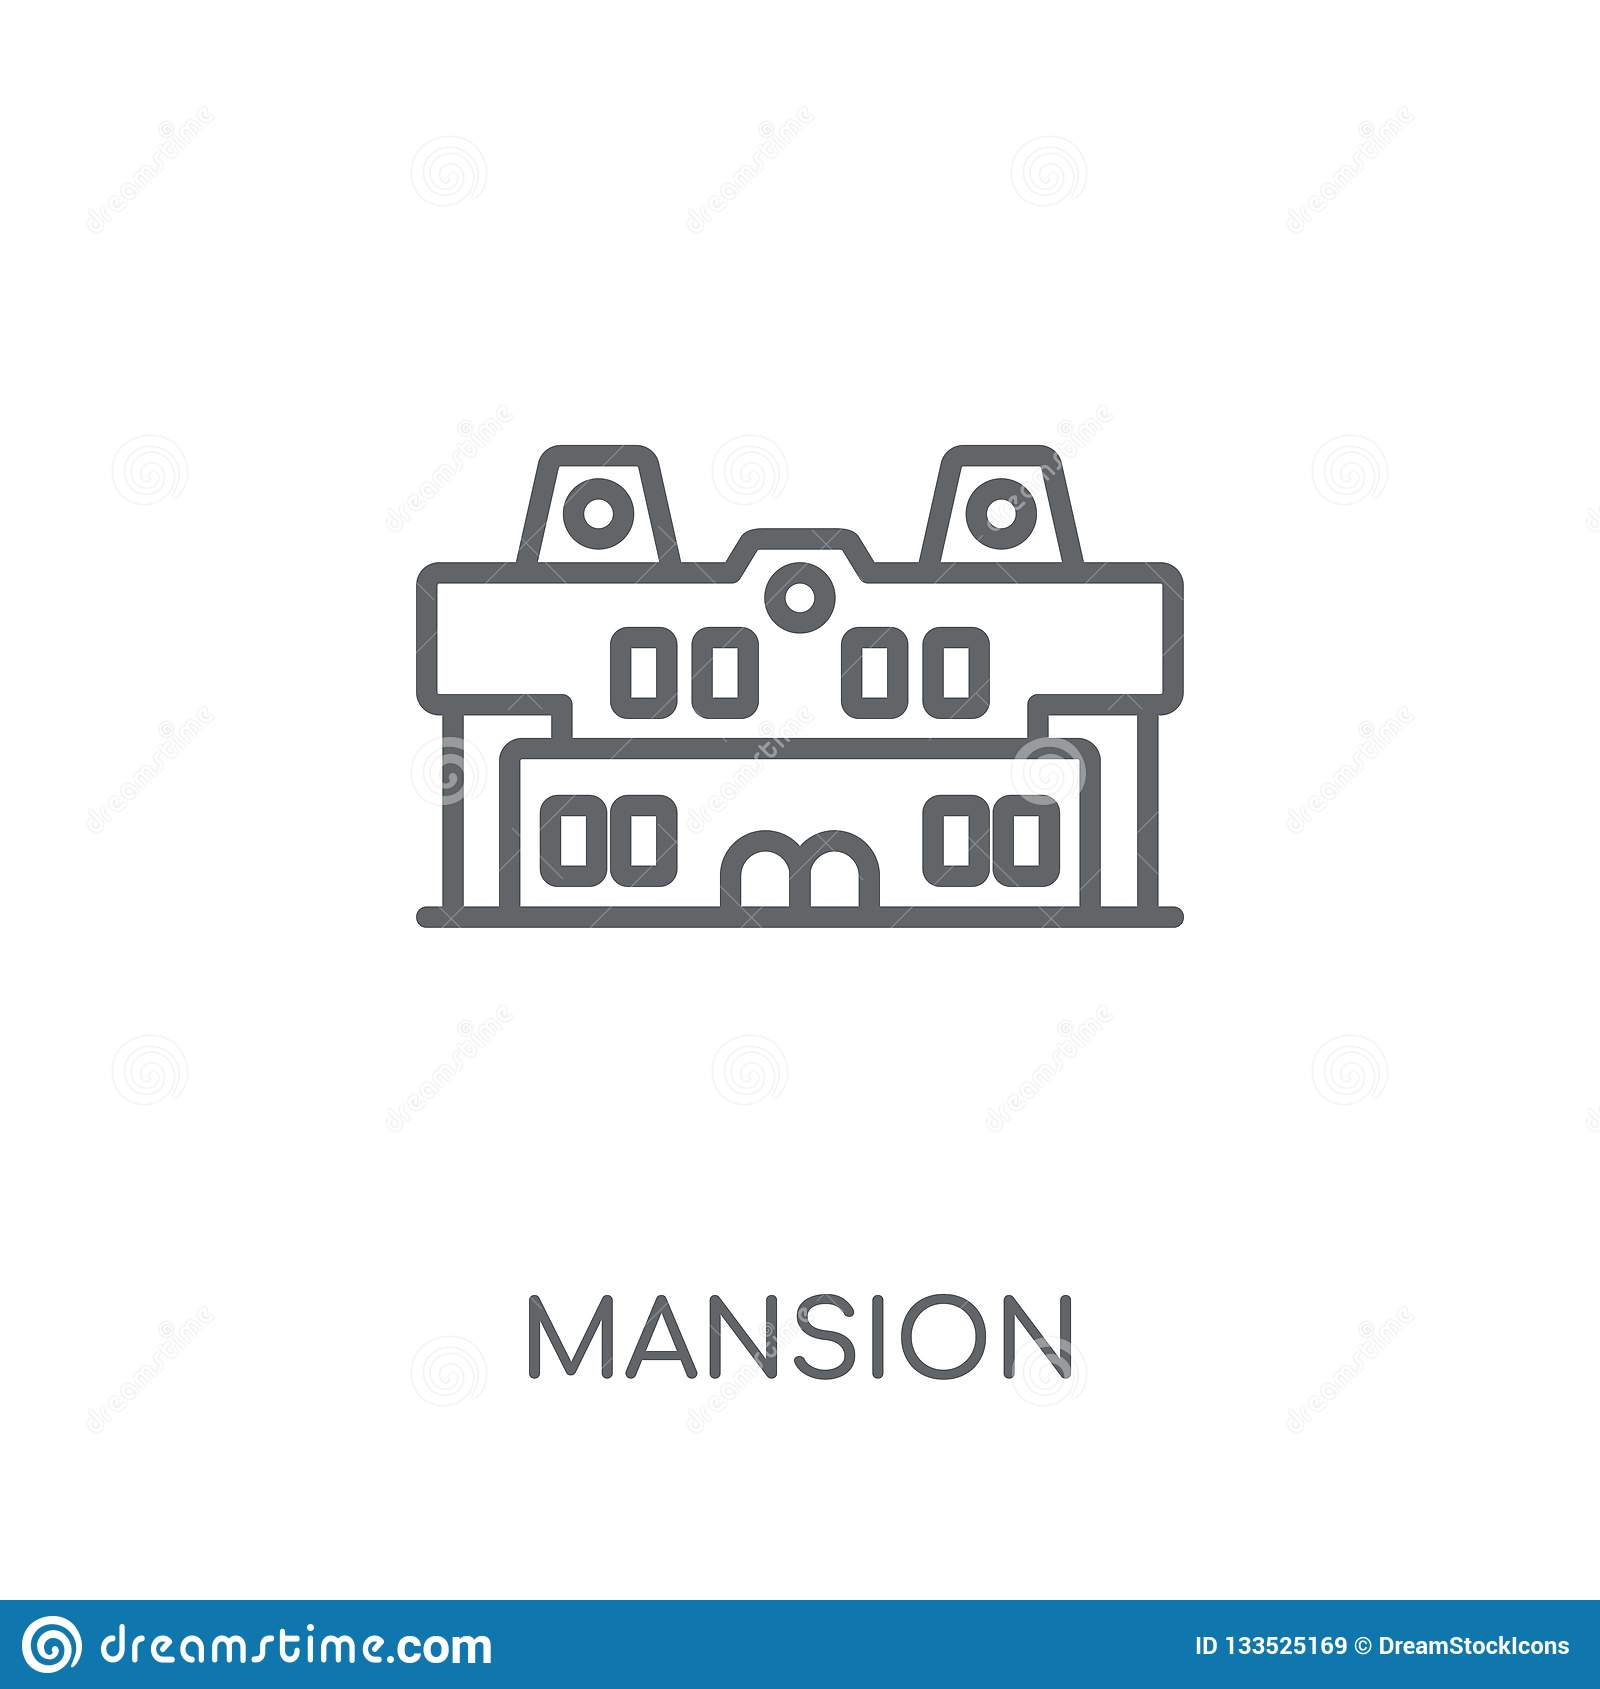 Mansion linear icon. Modern outline Mansion logo concept on whit